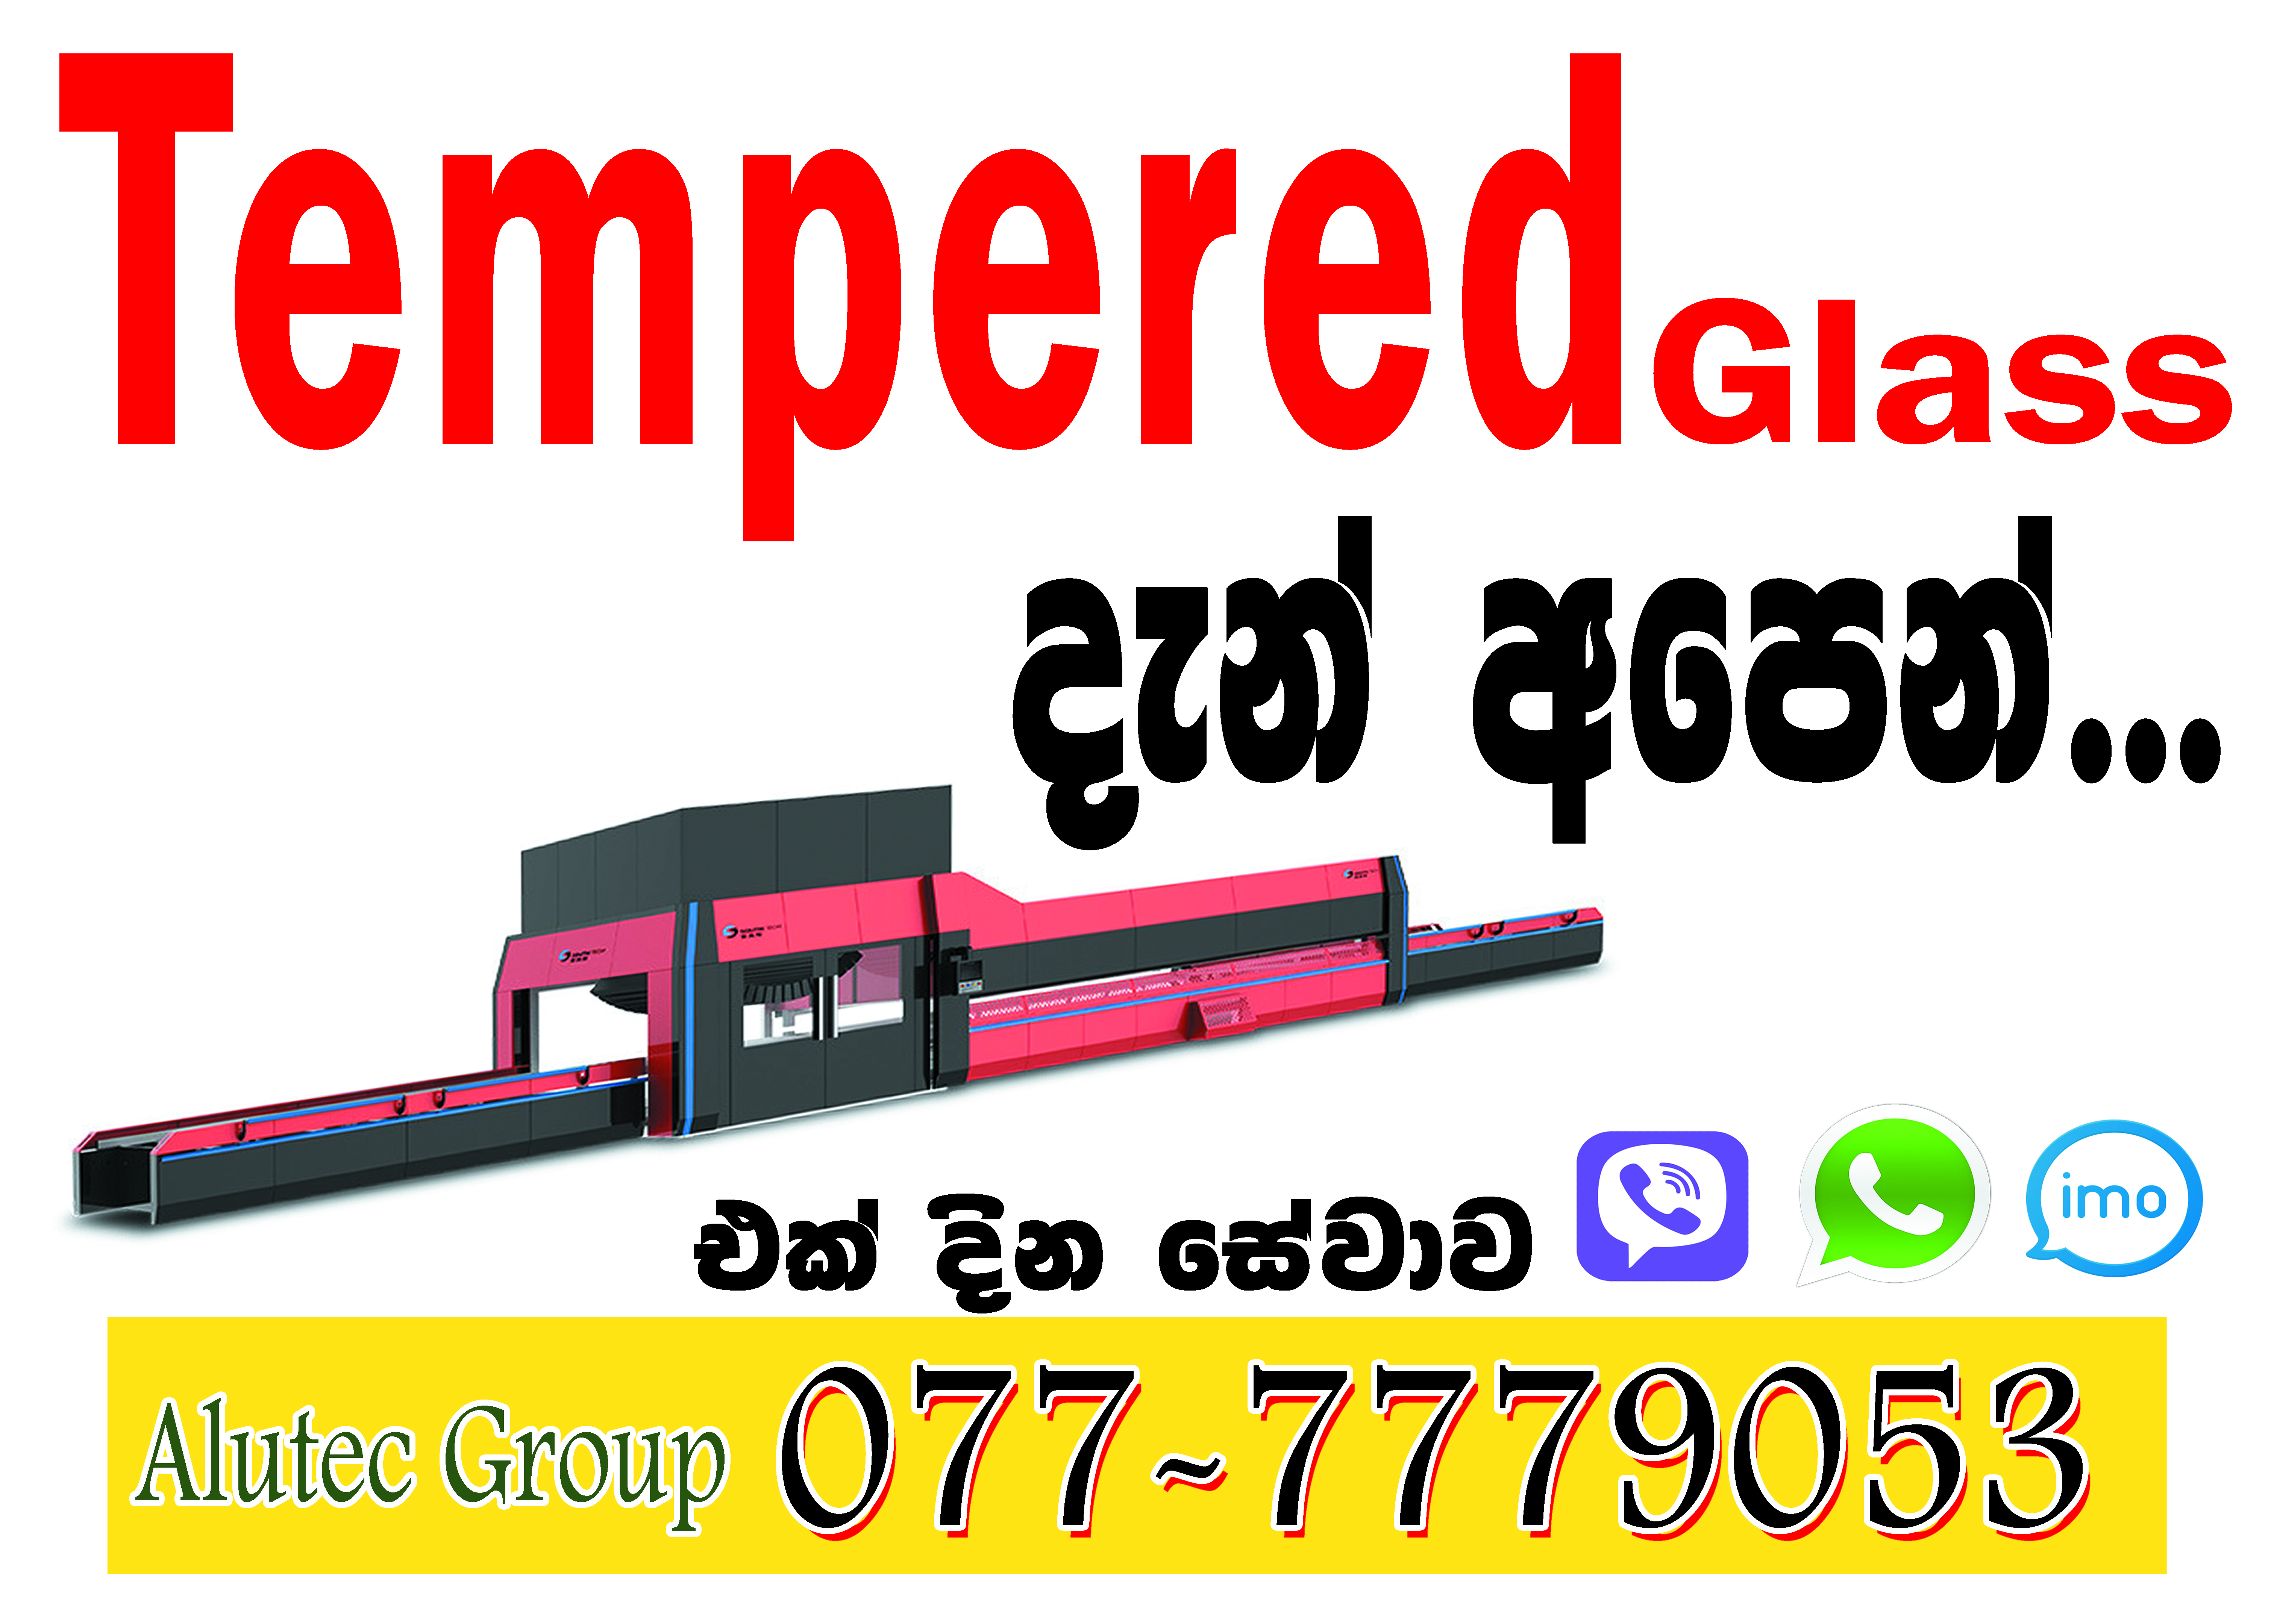 Tempered Glass Now Available